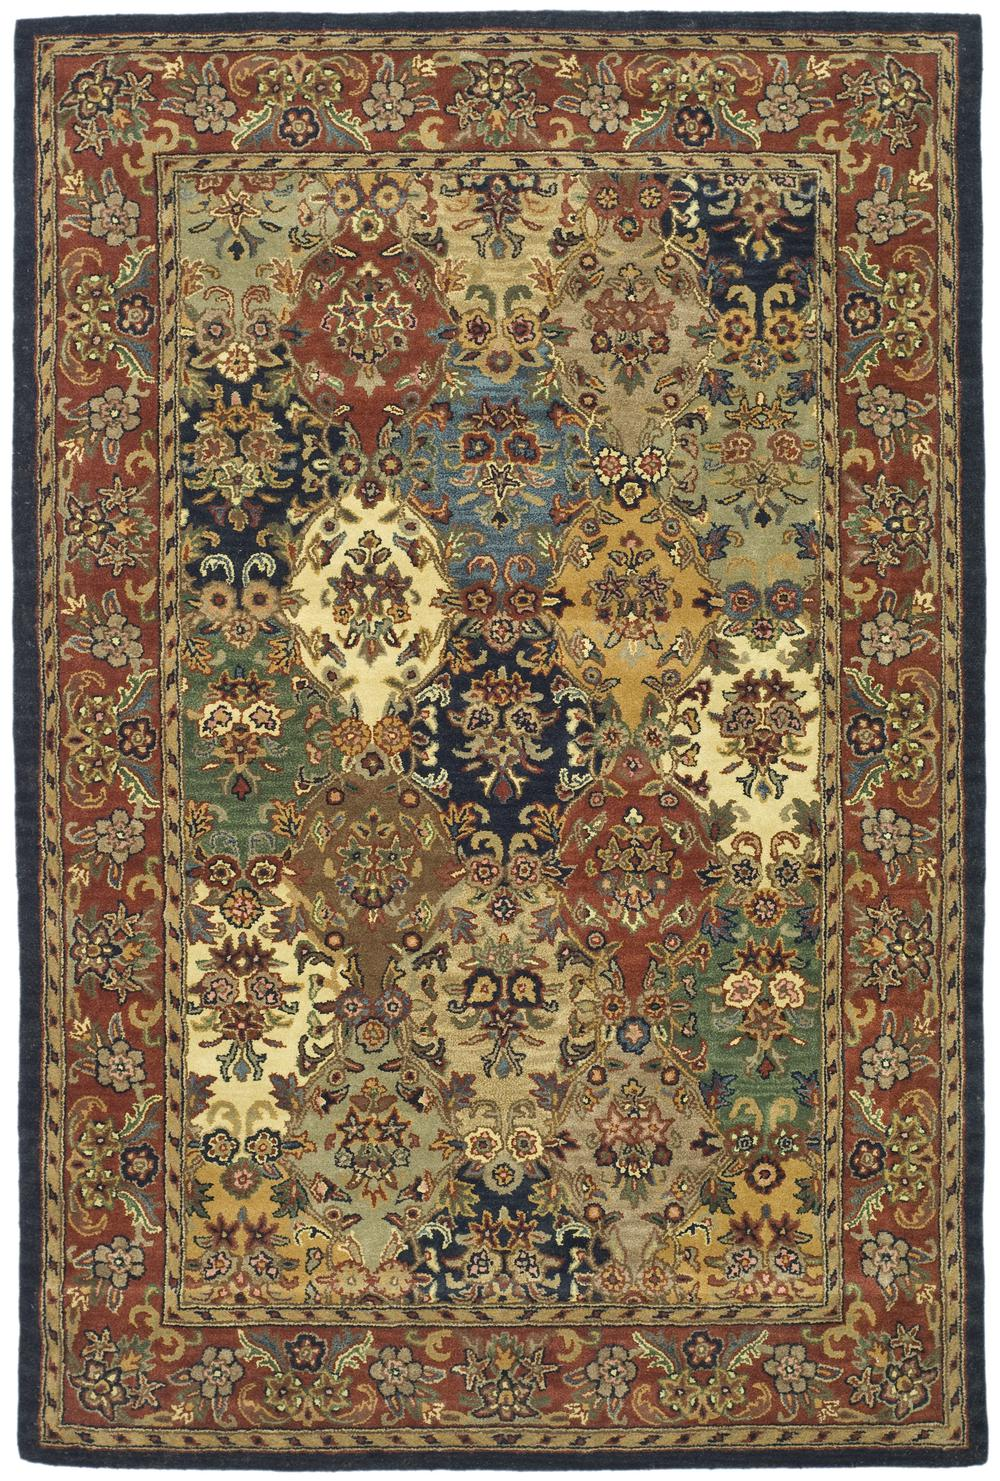 Safavieh Heritage Hg911a Multi And Burgundy Area Rug